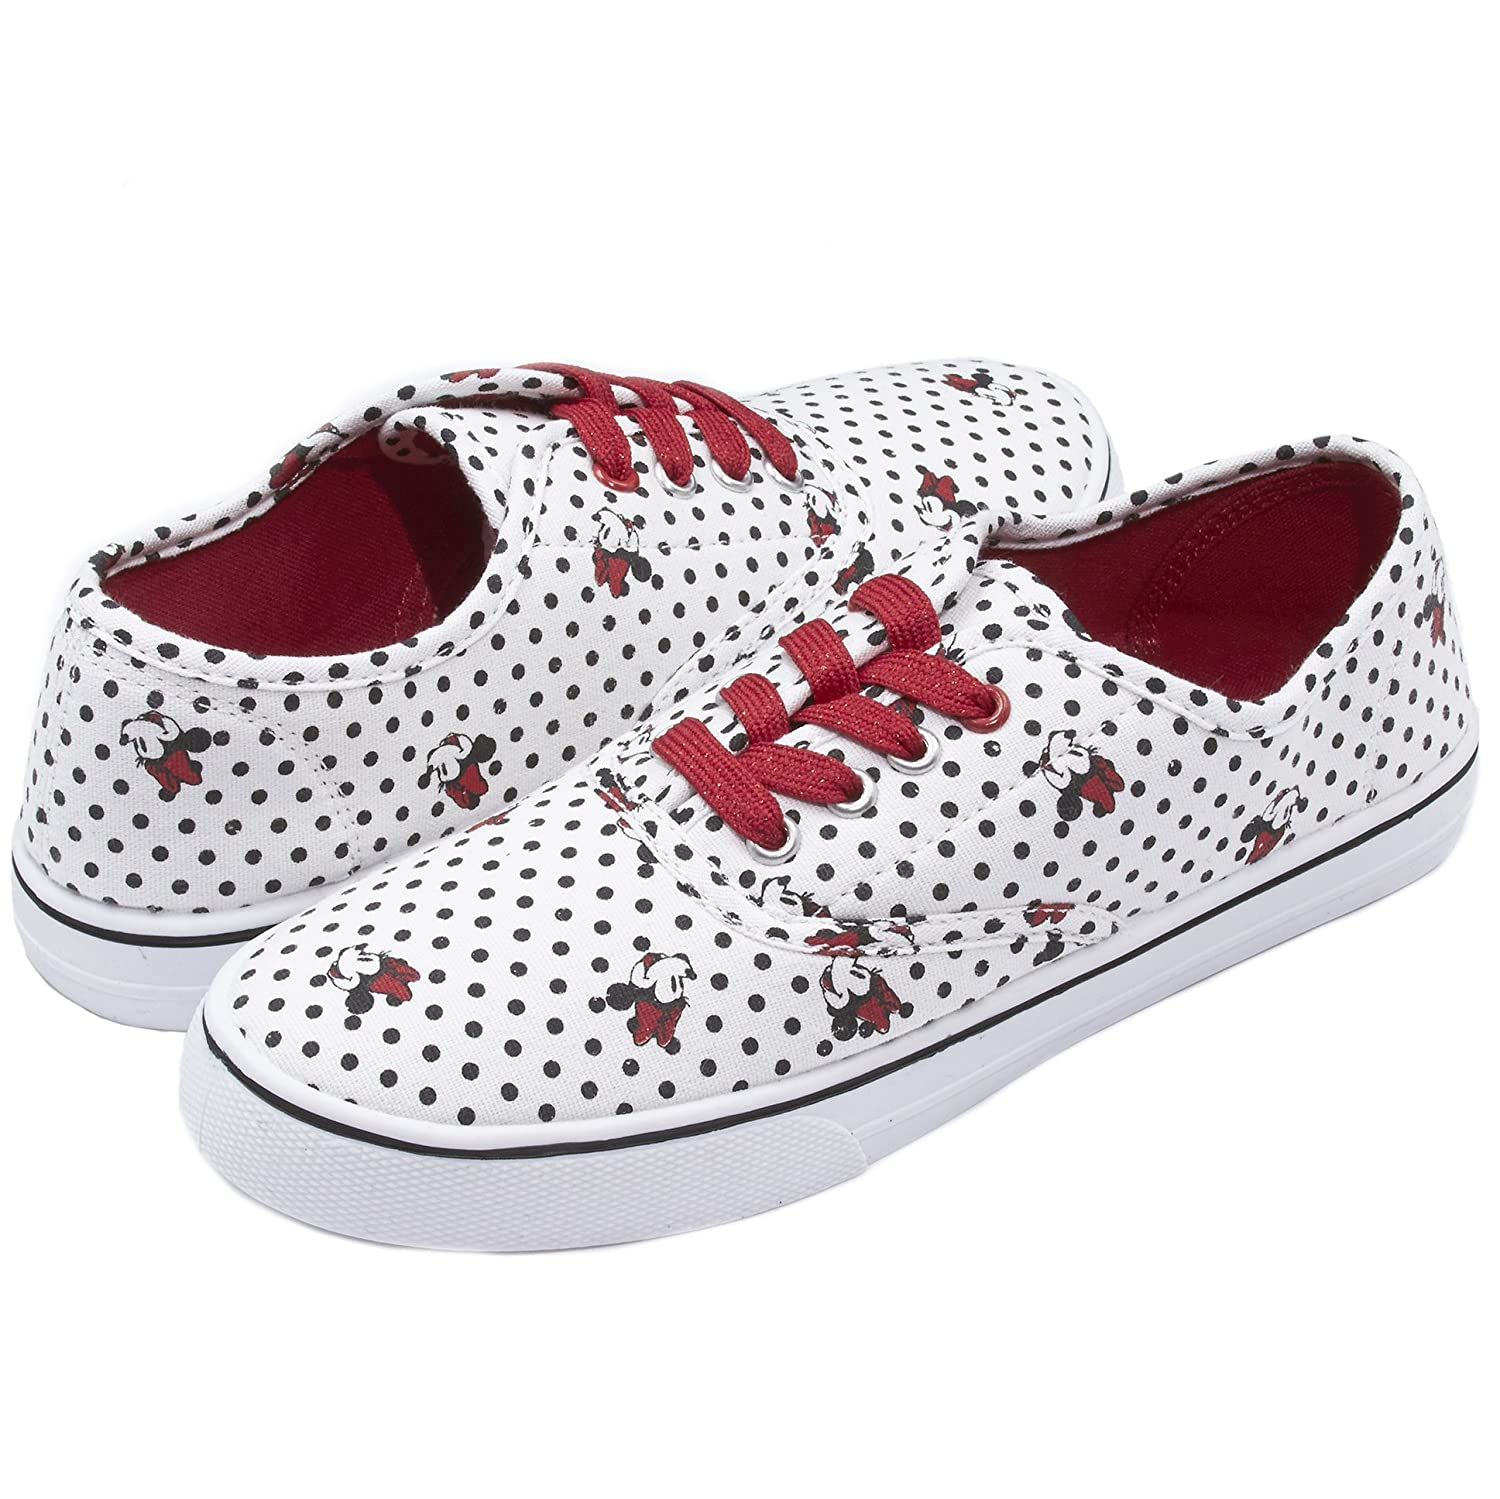 Disney Junior Teen Girls Low Top Mickey and Minnie Fashion Sneakers (See More Designs and Sizes) B074CF1KY1 11 B(M) US White